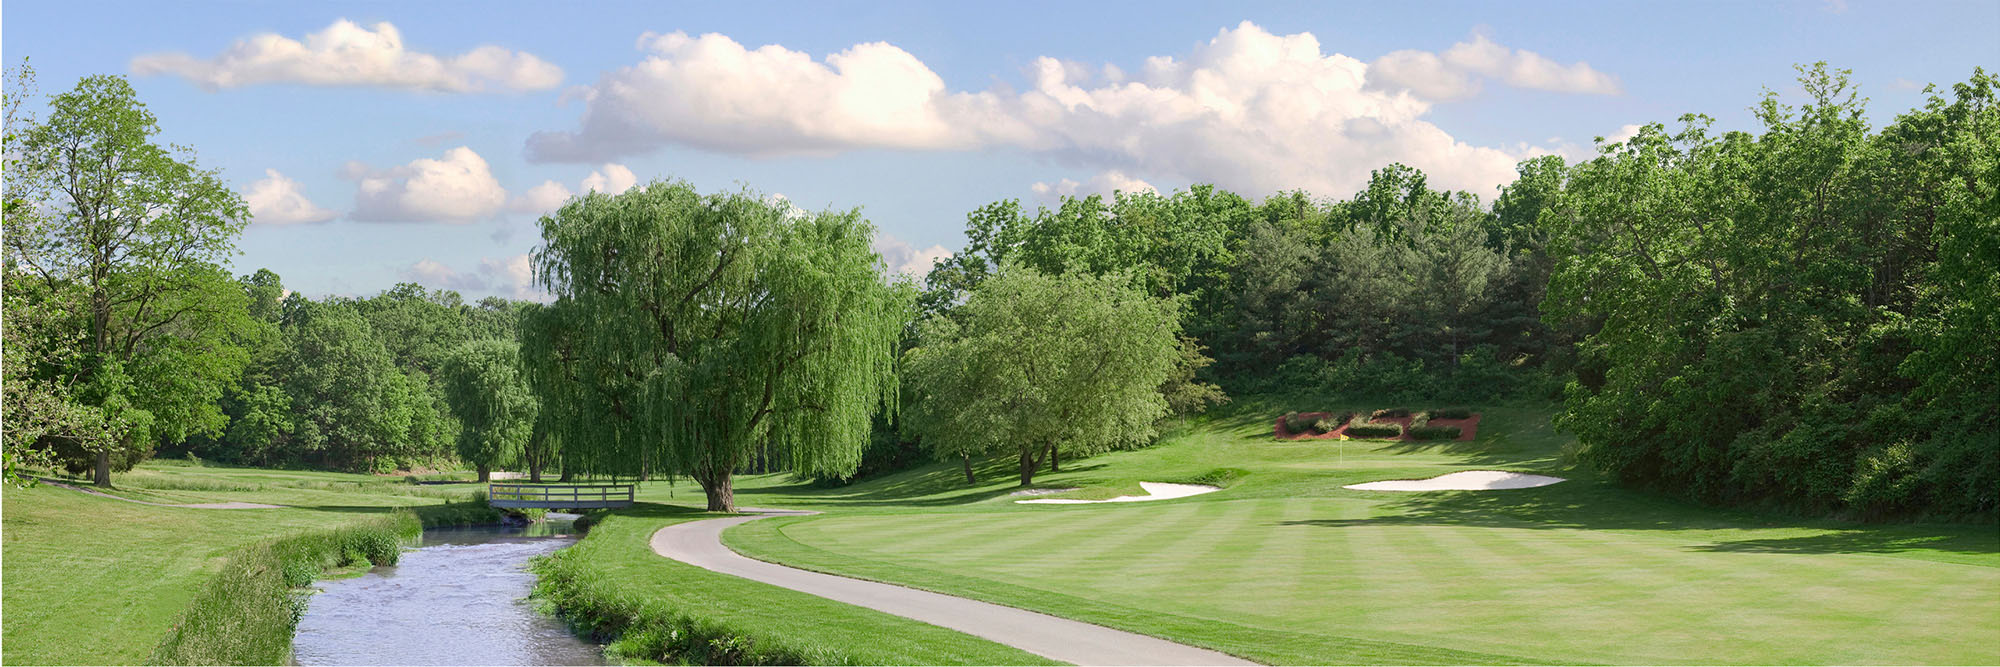 Golf Course Image - Winchester Country Club No. 10